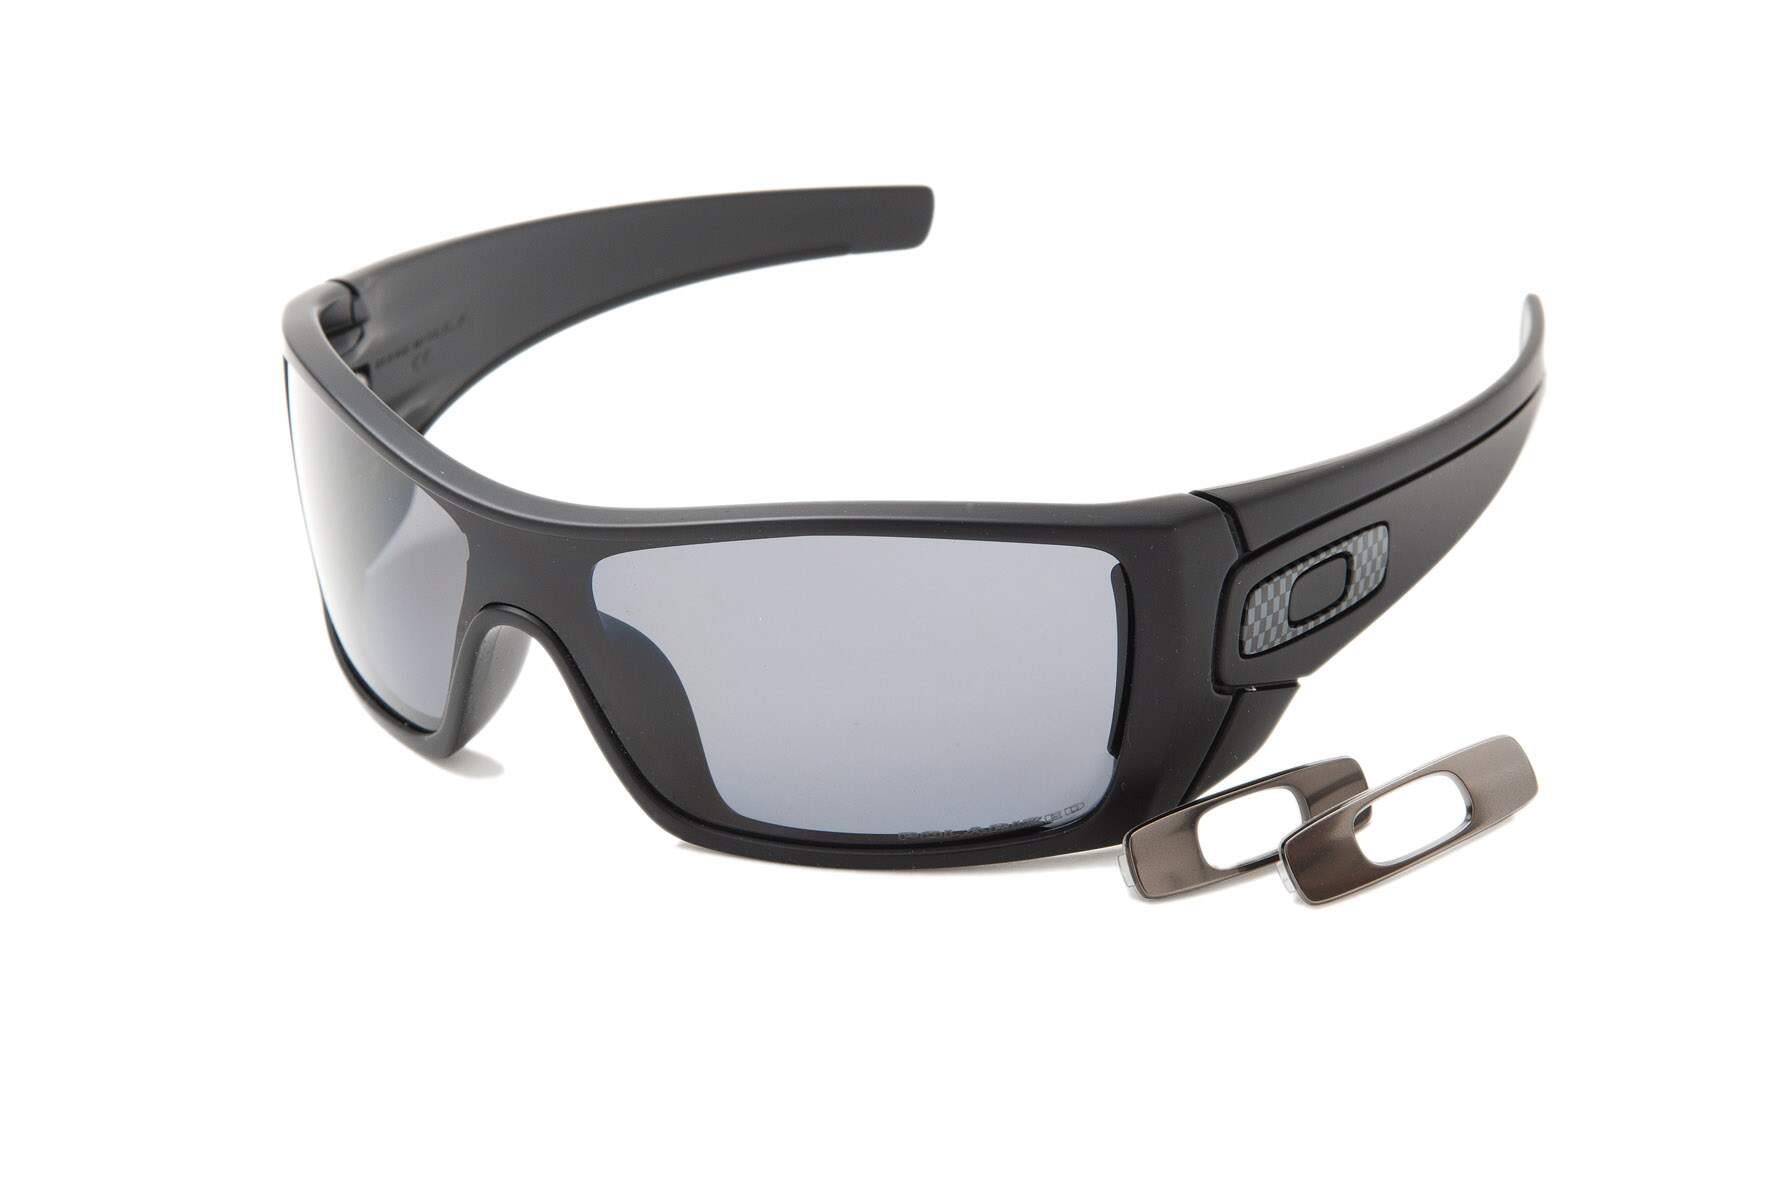 280949f4a Batwolf Matte Black / Grey Polarized OO9101-04 - CONRADO IMPORTADOS